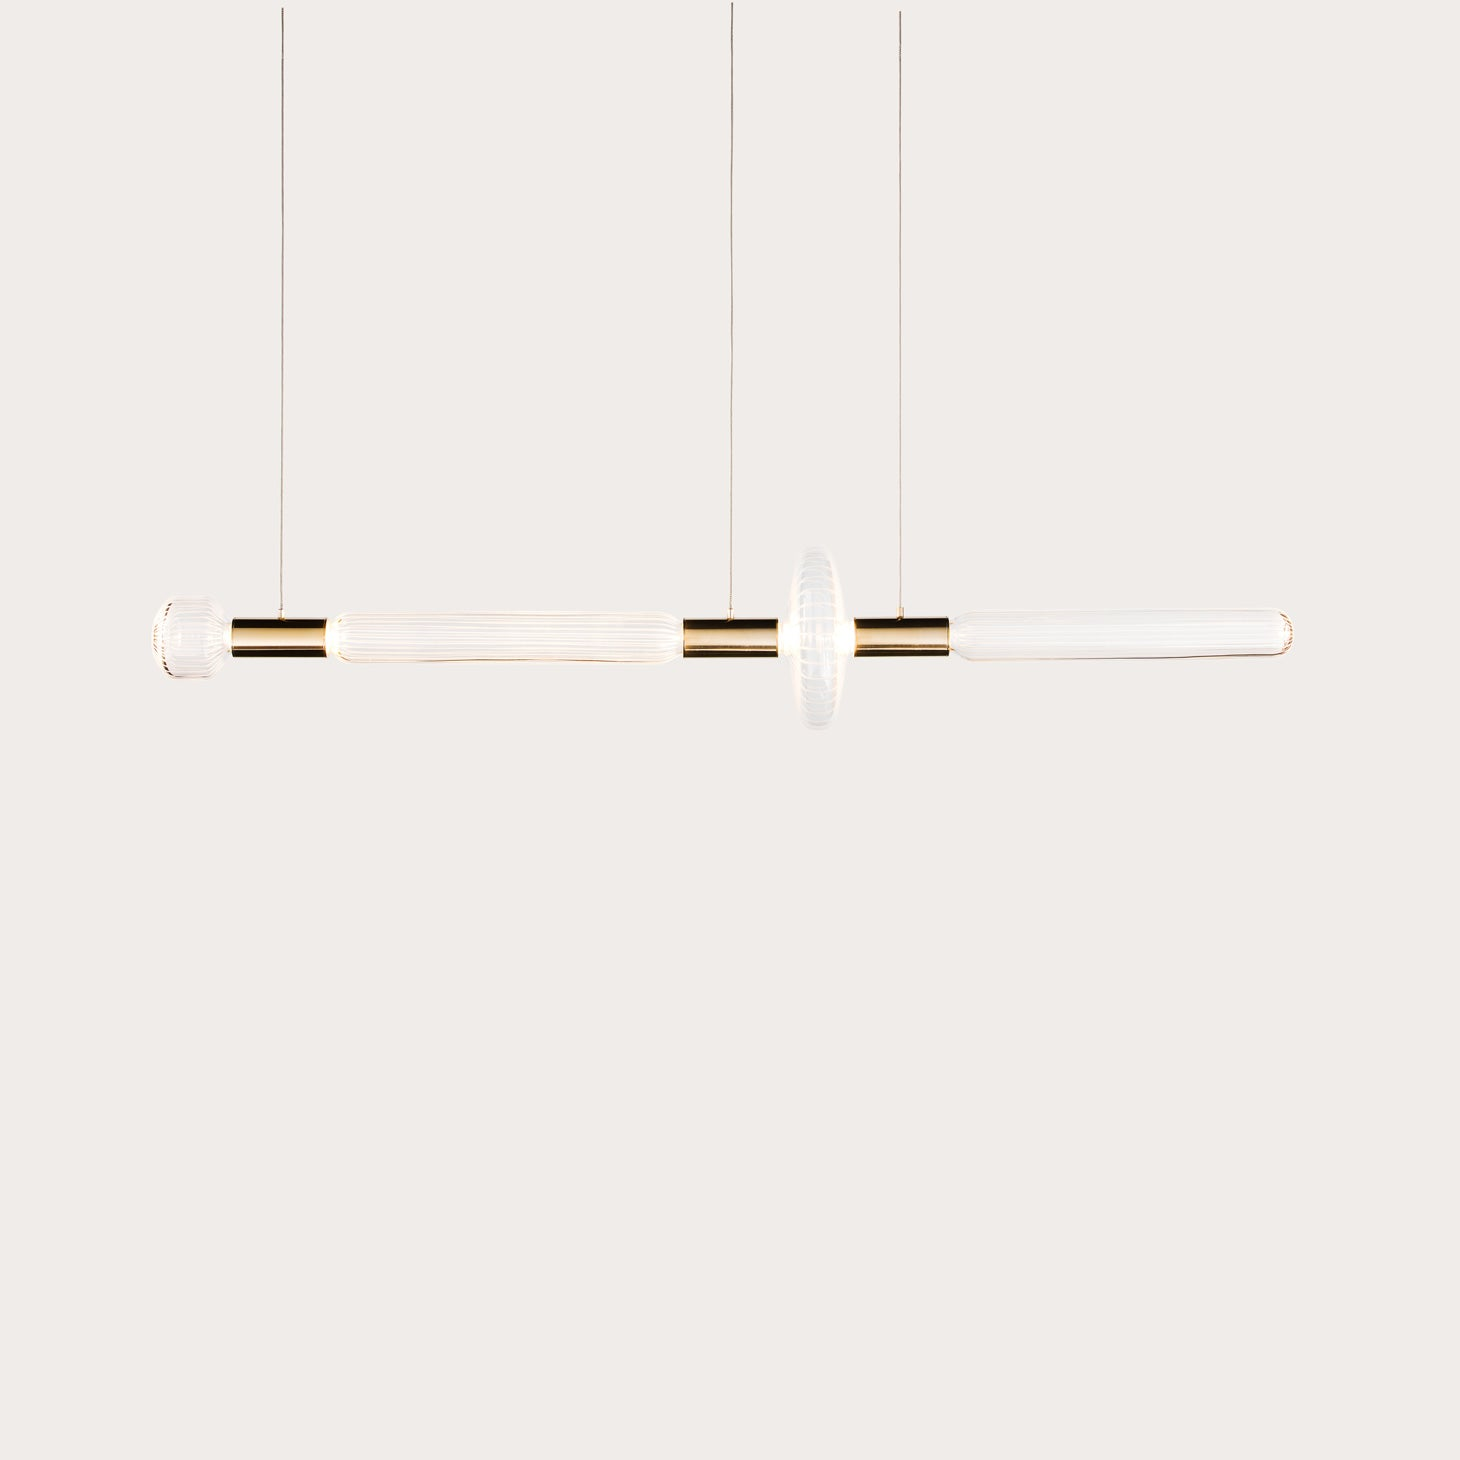 Cipher Horizontal Pendant S Lighting Yabu Pushelberg Designer Furniture Sku: 011-160-10000